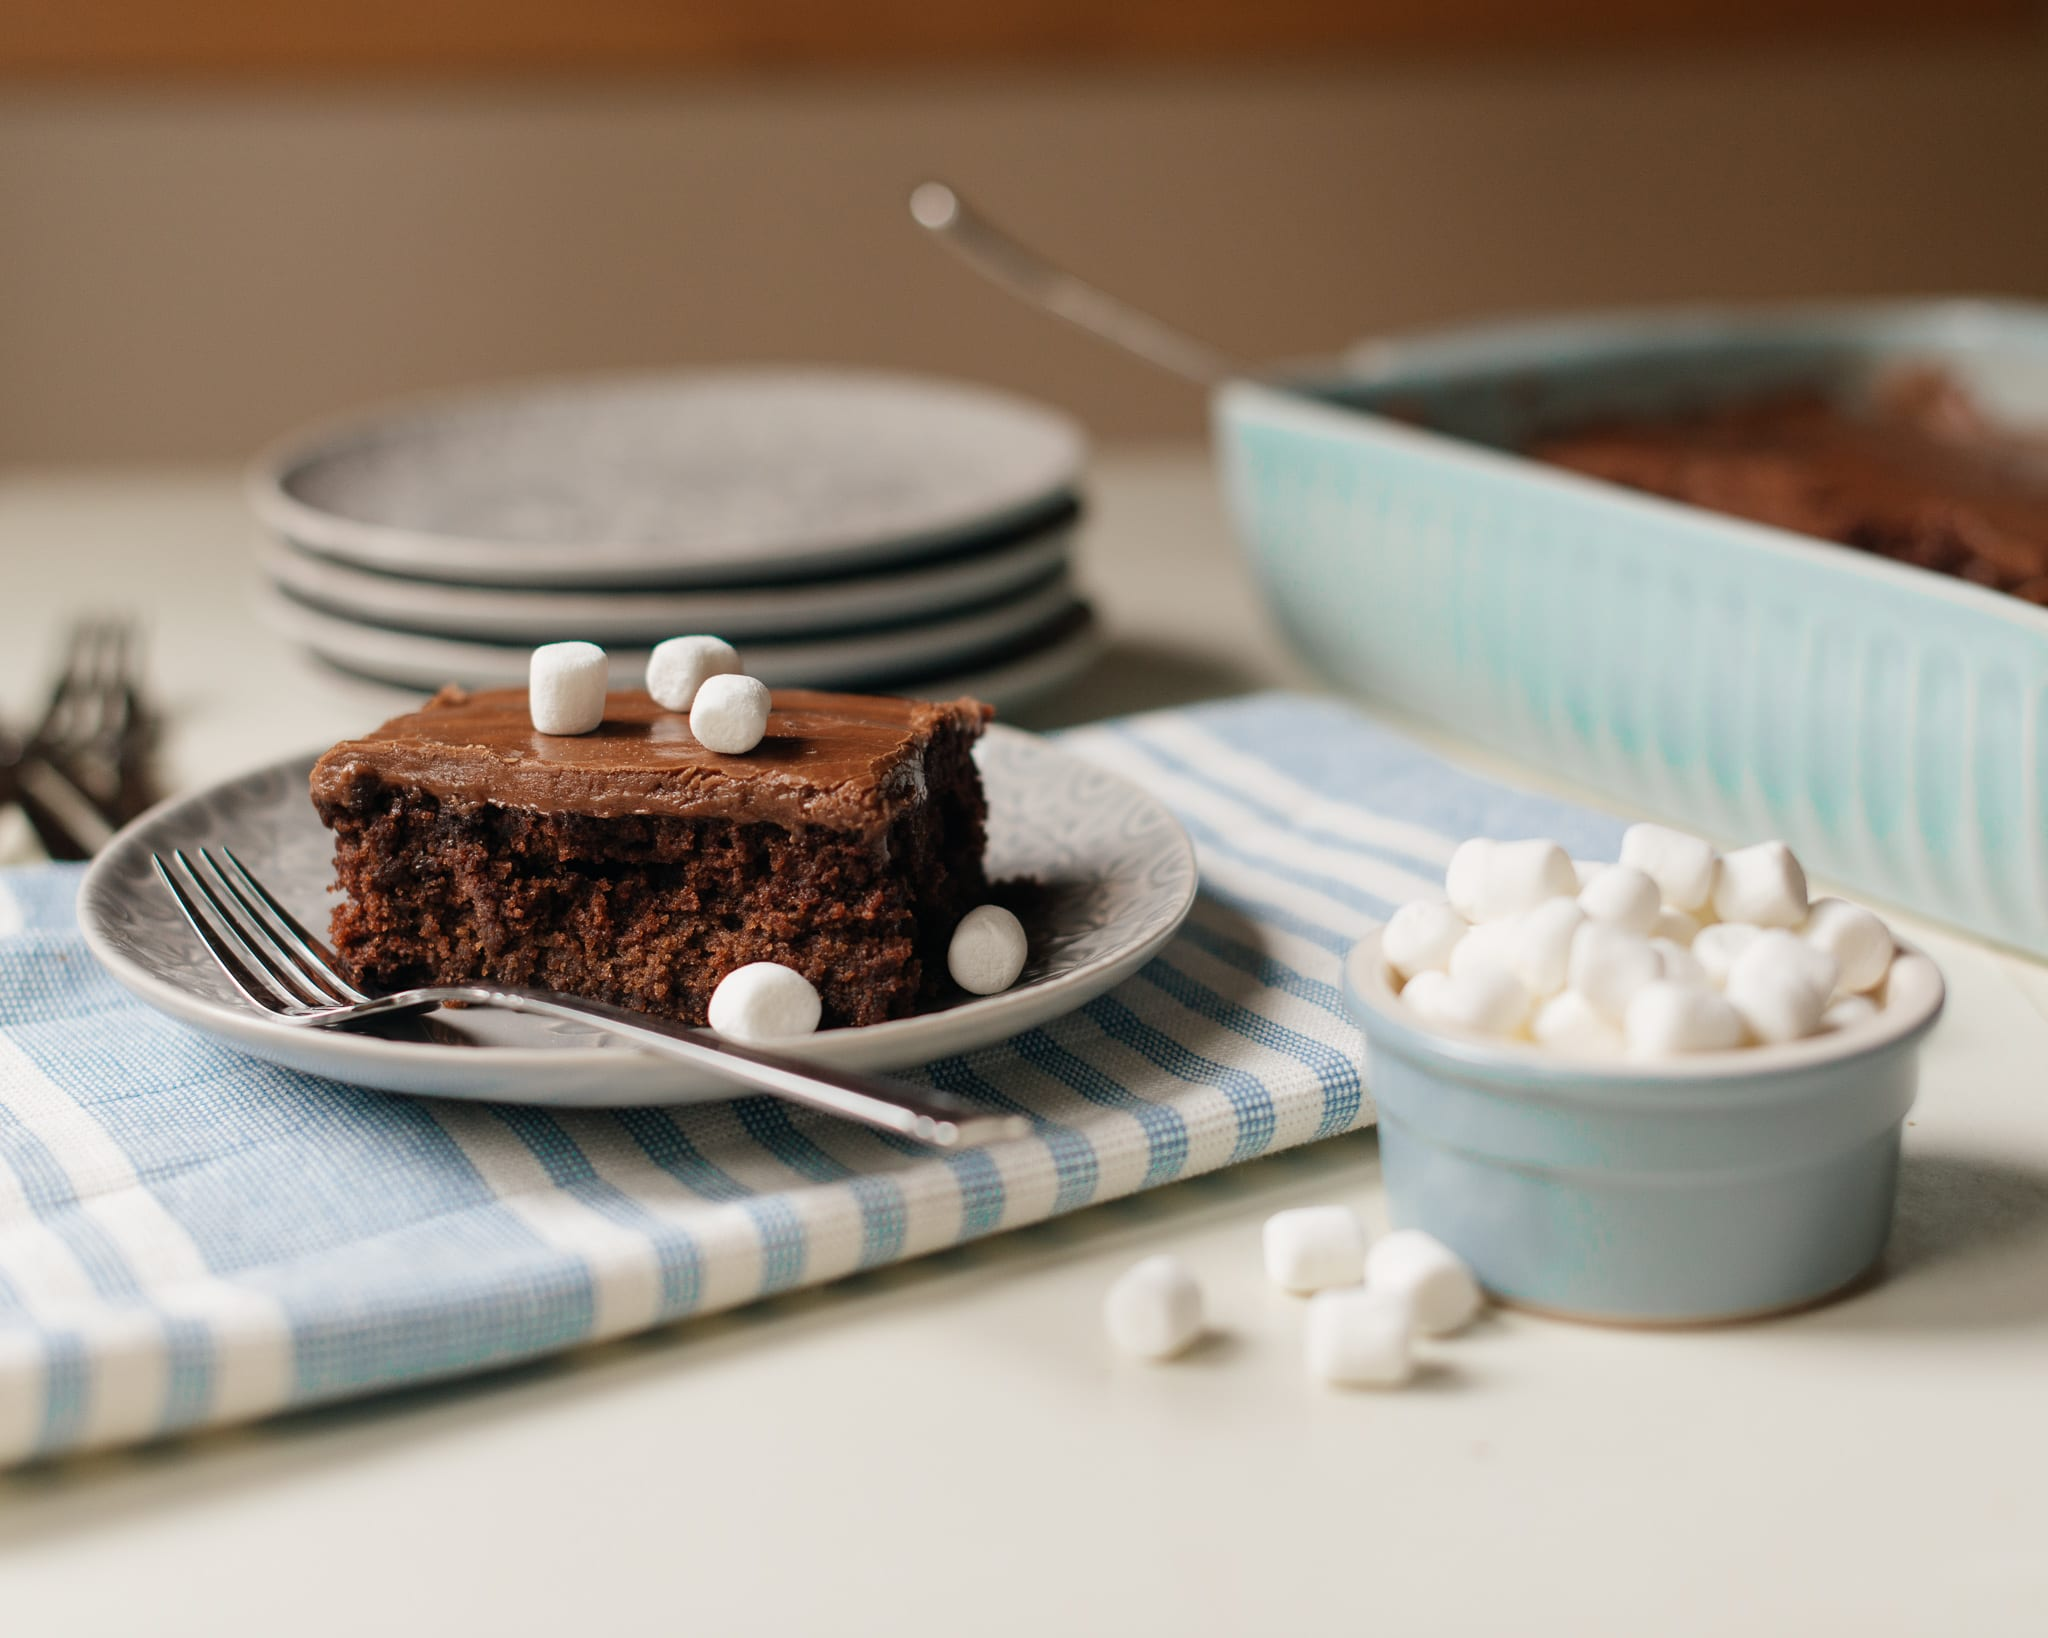 chocolate cake, chocolate, cake recipes, chocolate cake recipes, ganache frosting, frosting, homemade, family recipes, comfort food, dessert, dessert recipes